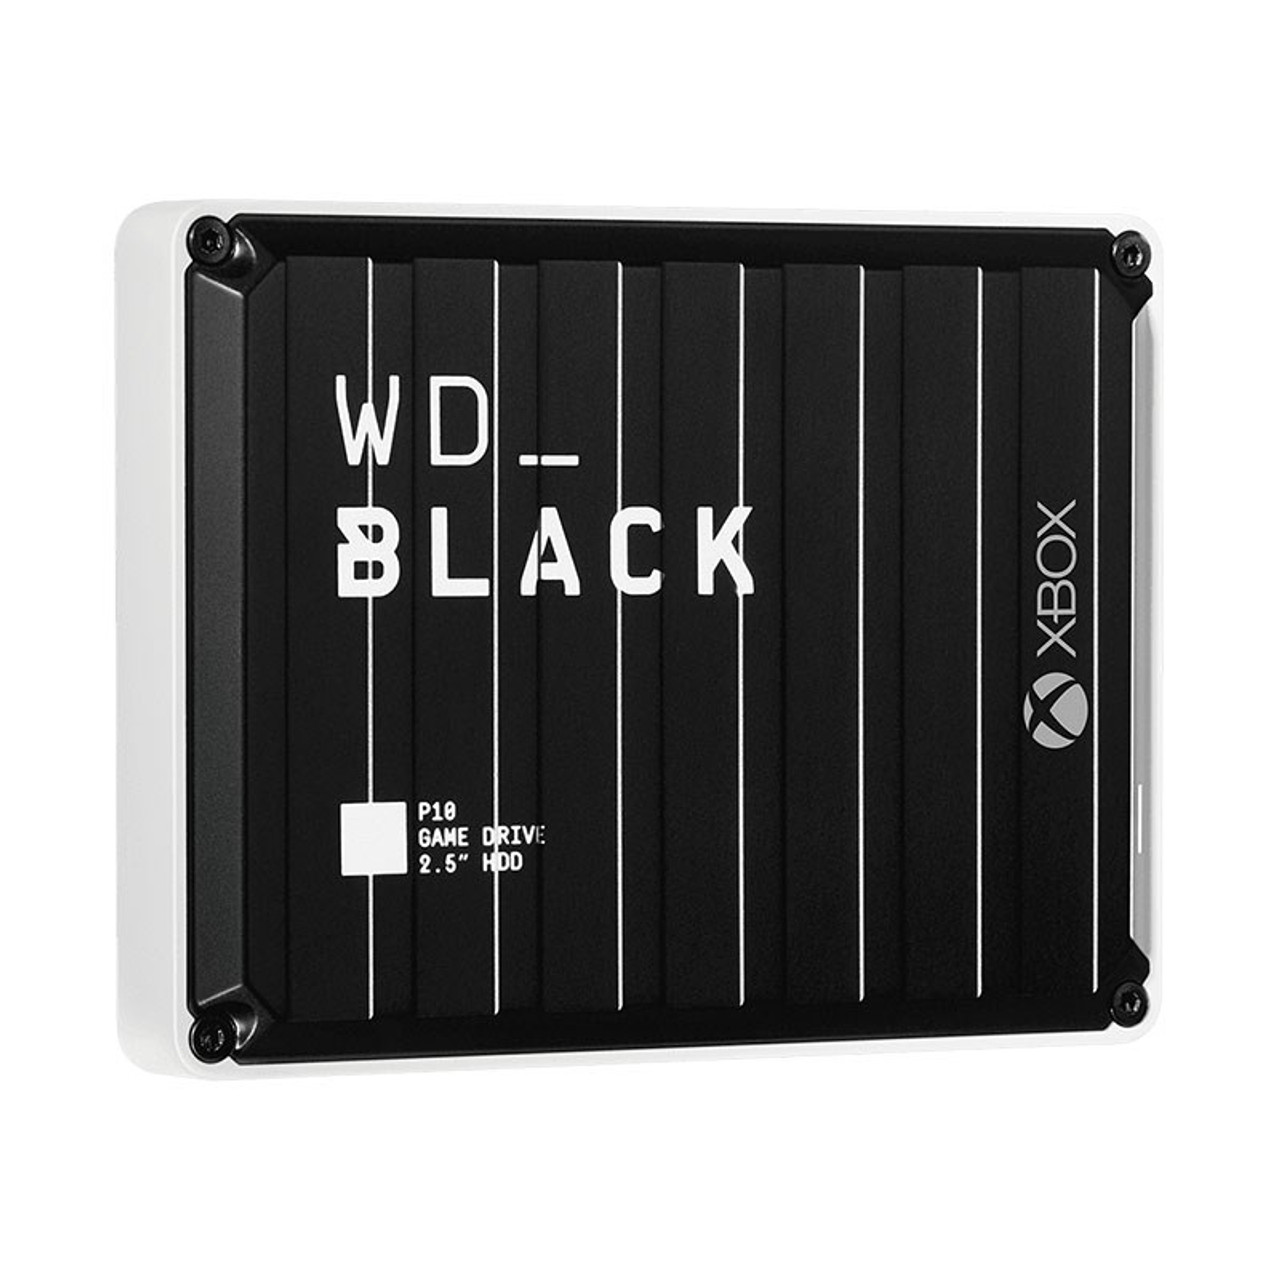 Image for Western Digital WD Black 3TB P10 Game Drive for Xbox One WDBA5G0030BBK CX Computer Superstore